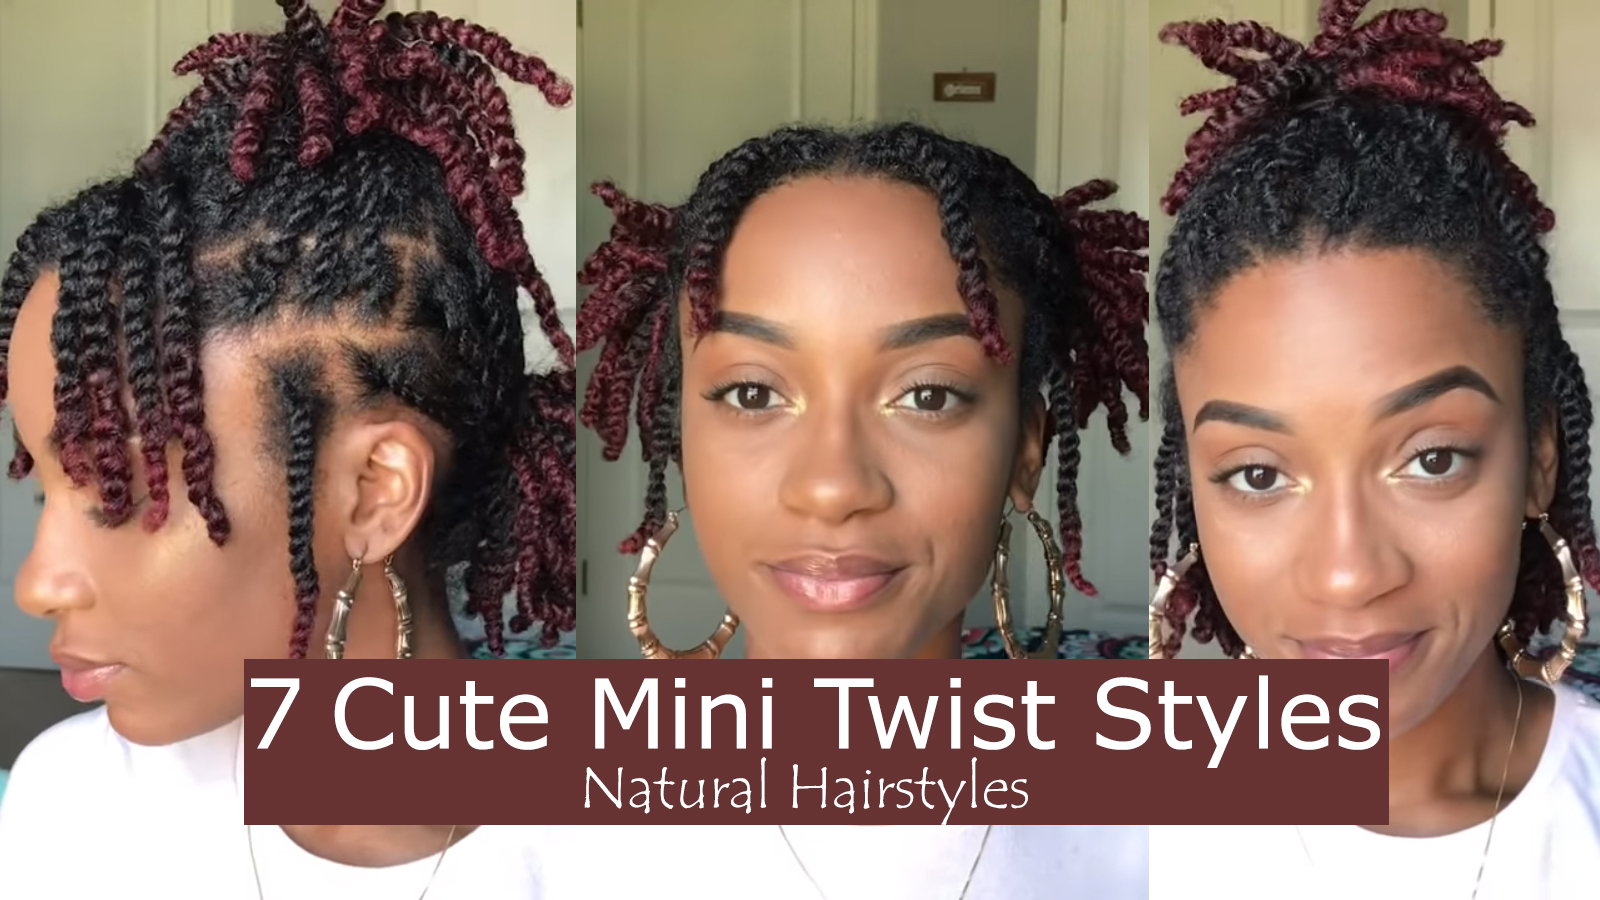 7 Quick And Easy Styles You Can Do With Your Mini Twists